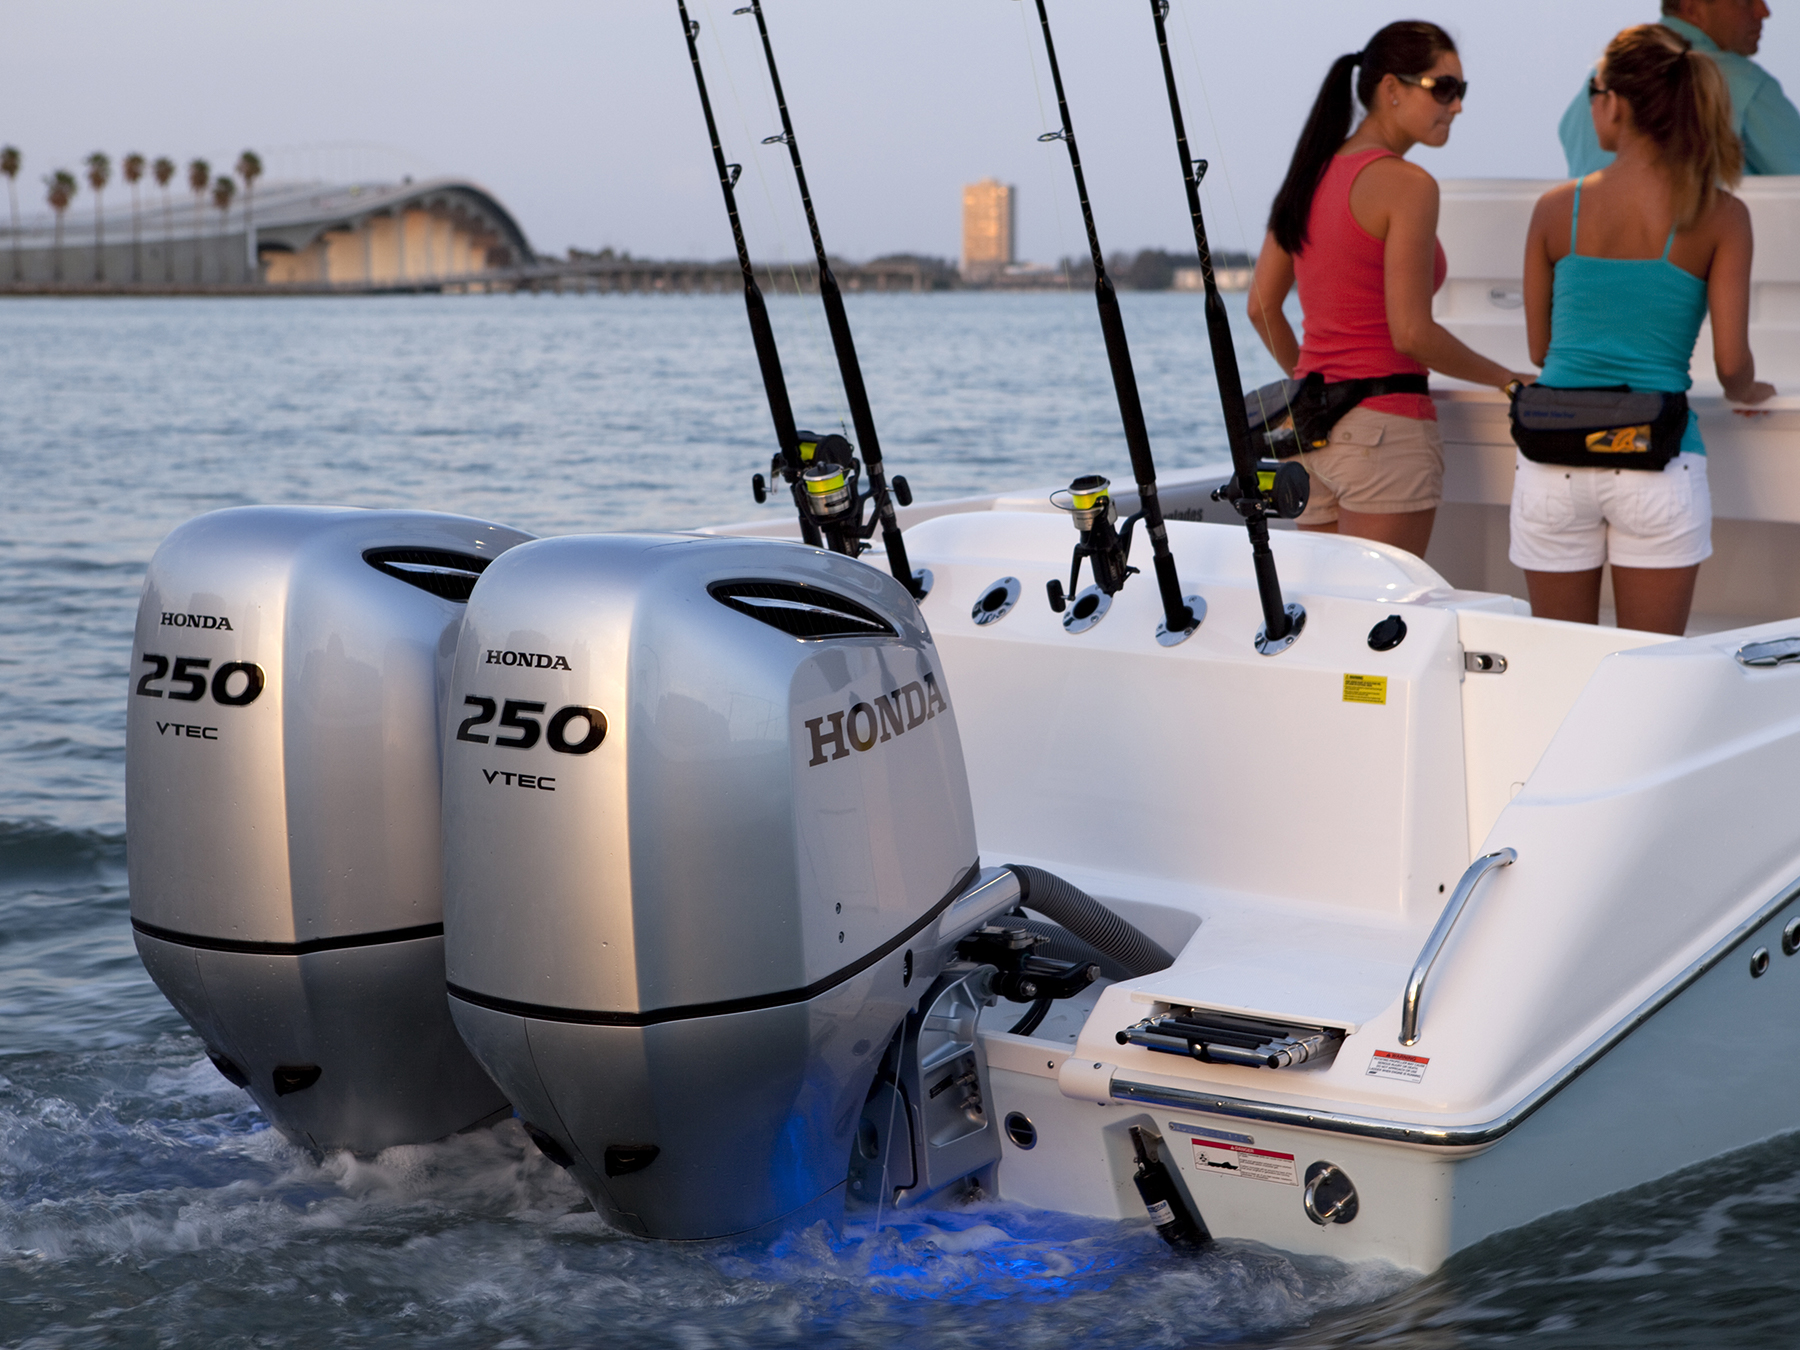 2 honda 250 vtec engines attached to the back of a white boat with fishing rods